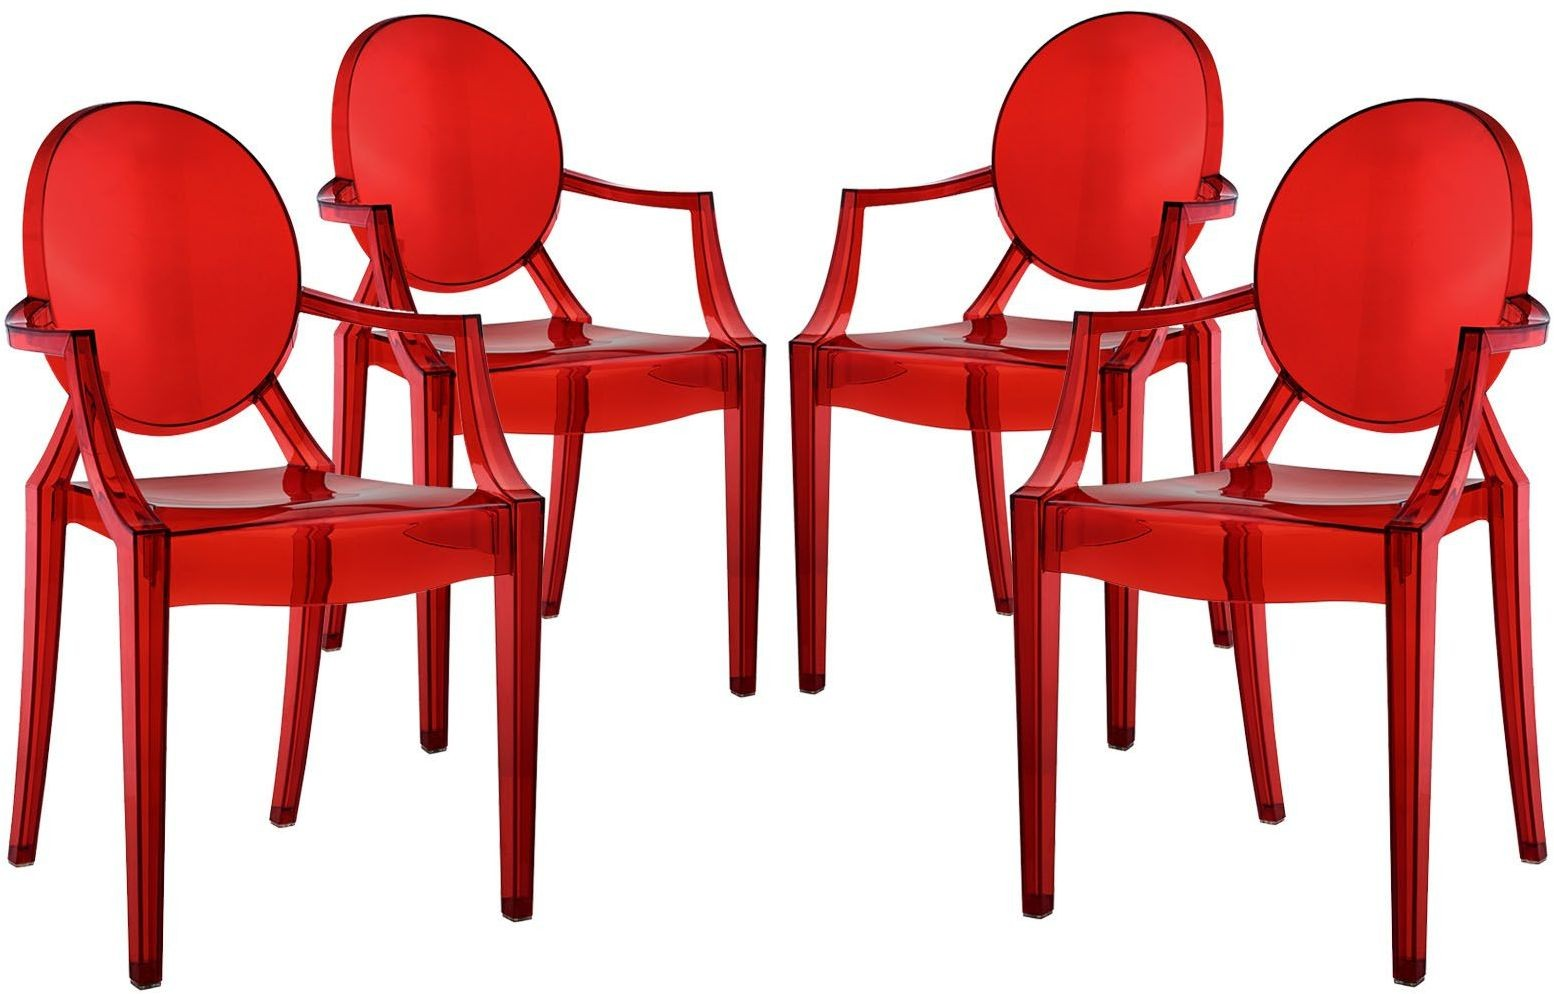 Casper Red Dining Armchair Set of 4 EEI 1769 RED  : eei 1769 red1eei from colemanfurniture.com size 1554 x 994 jpeg 184kB